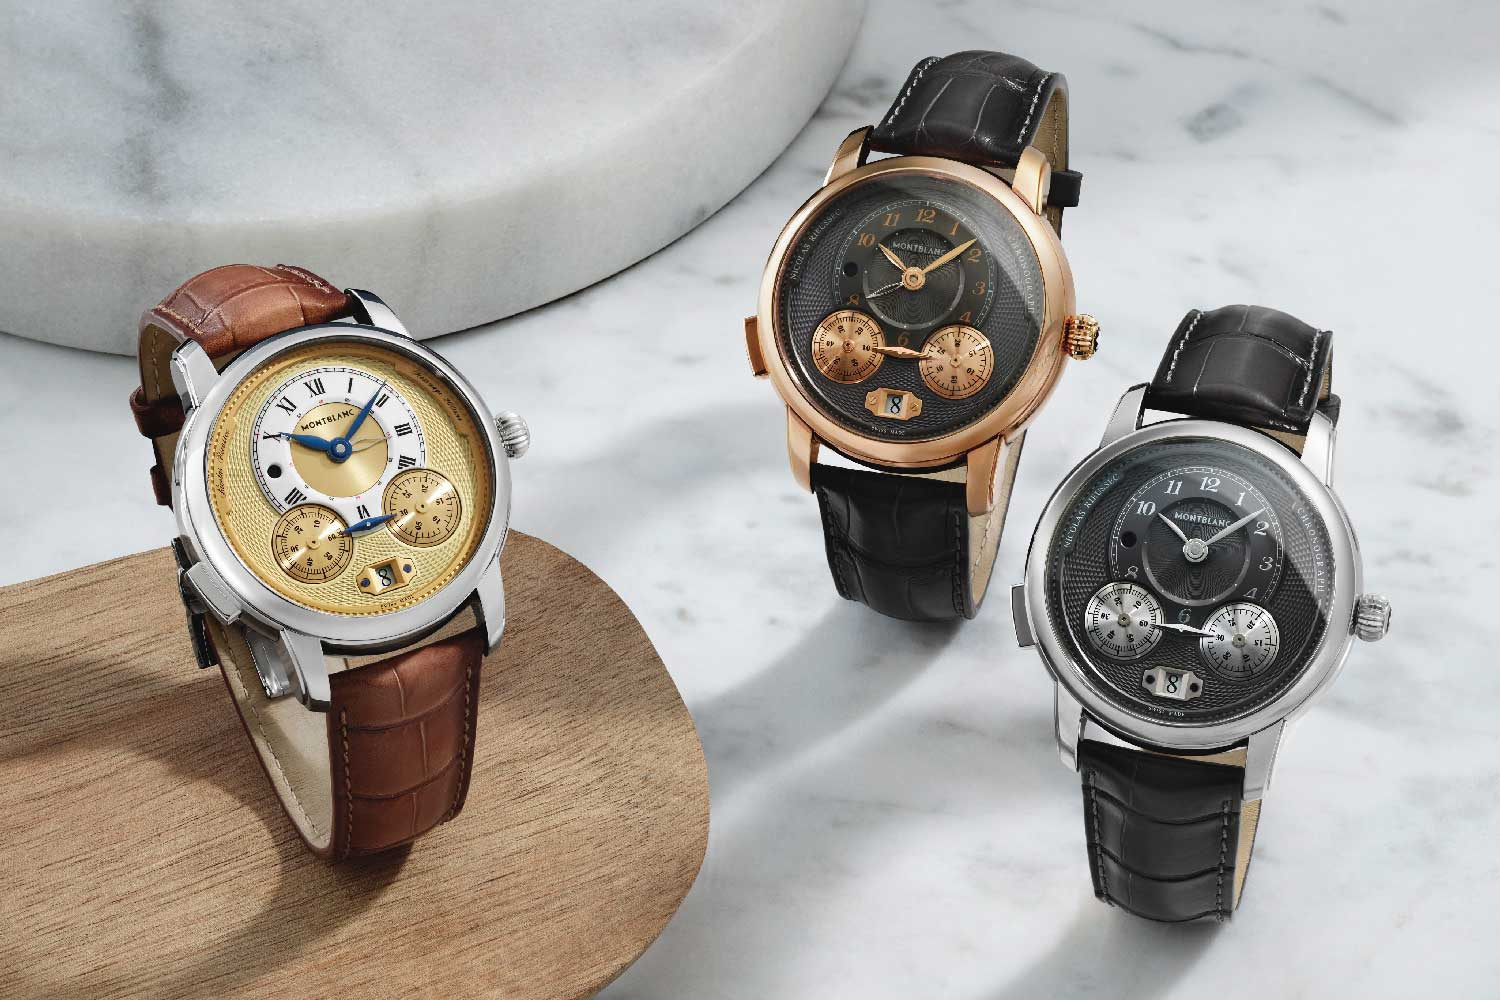 Since 1927, the Montblanc Star Legacy timepieces have featured round cases with elegant curved finishes to the sides that give a refined pebble-shaped effect.